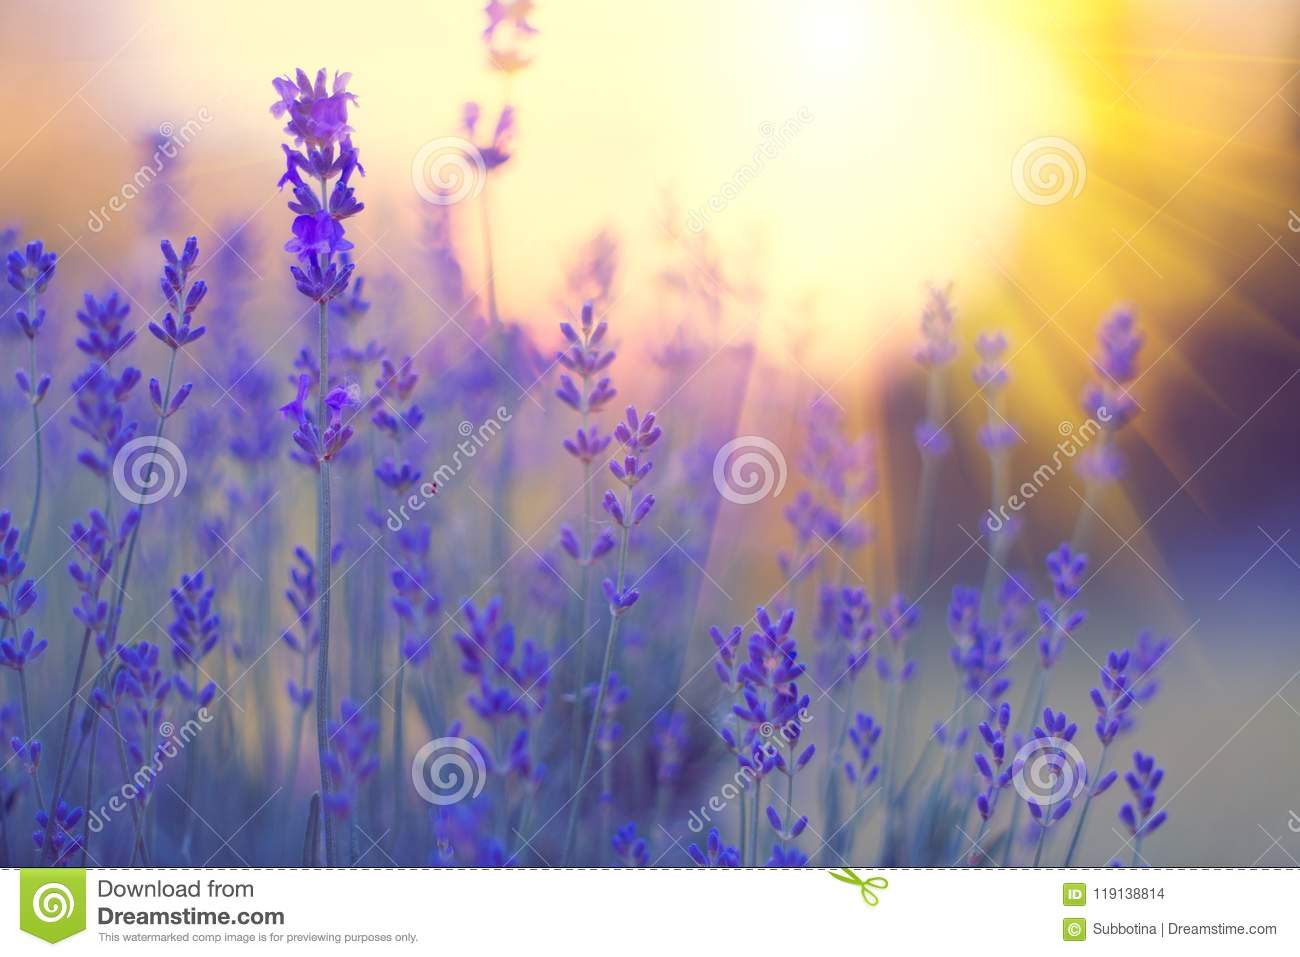 Download Lavender Field, Blooming Violet Fragrant Lavender Flowers. Growing Lavender Swaying On Wind Over Sunset Sky Stock Photo - Image of aroma, blooming: 119138814